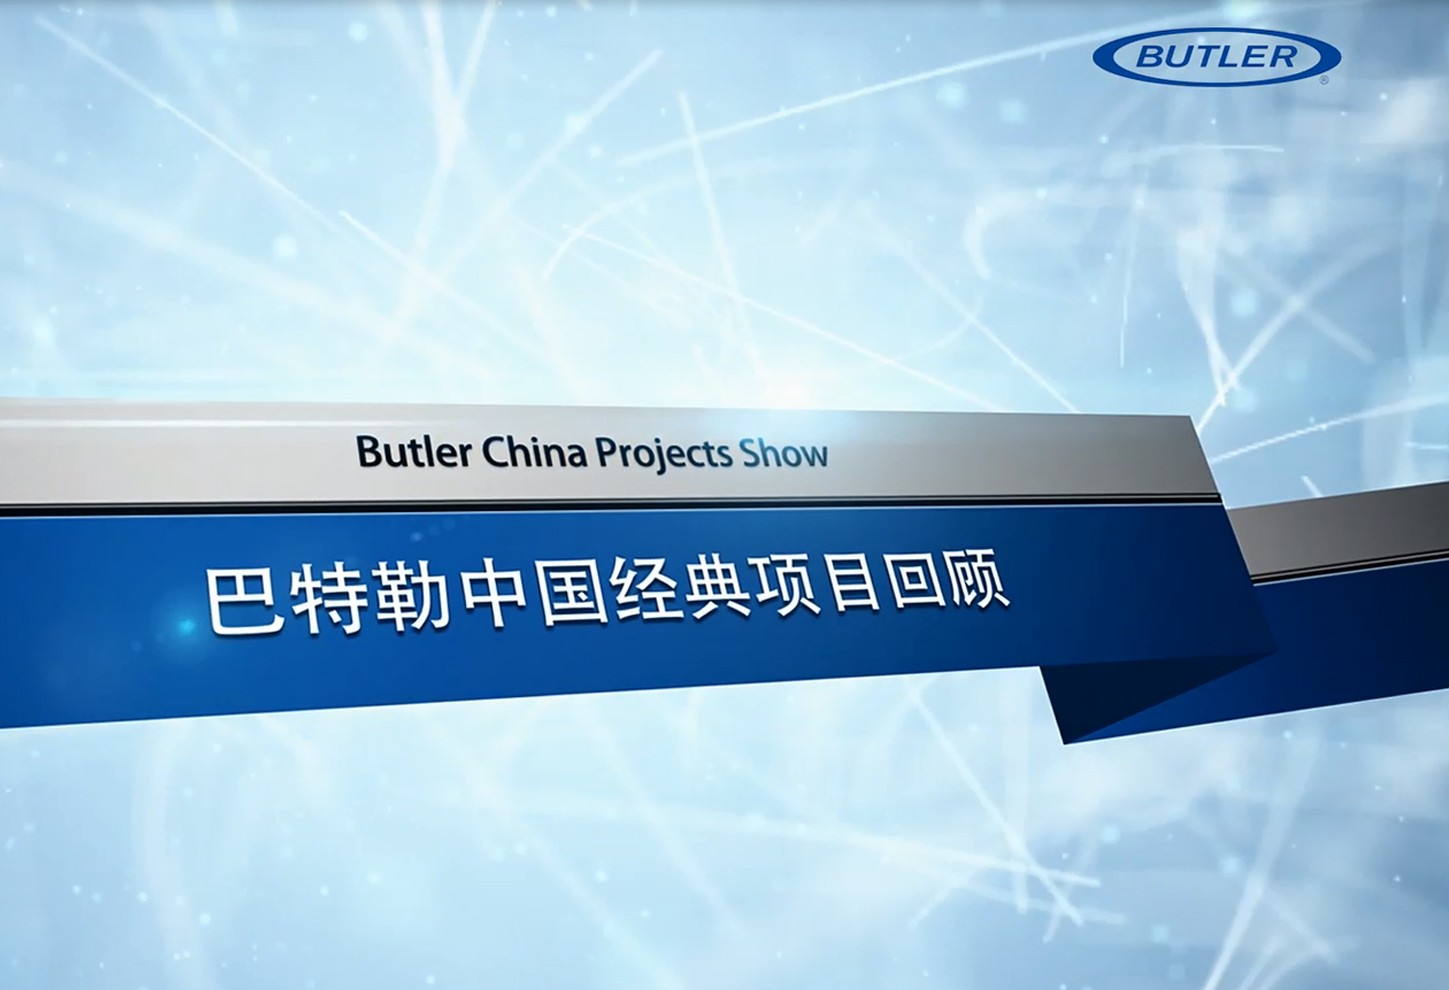 巴特勒中国项目回顾 Butler China Projects Show.jpg